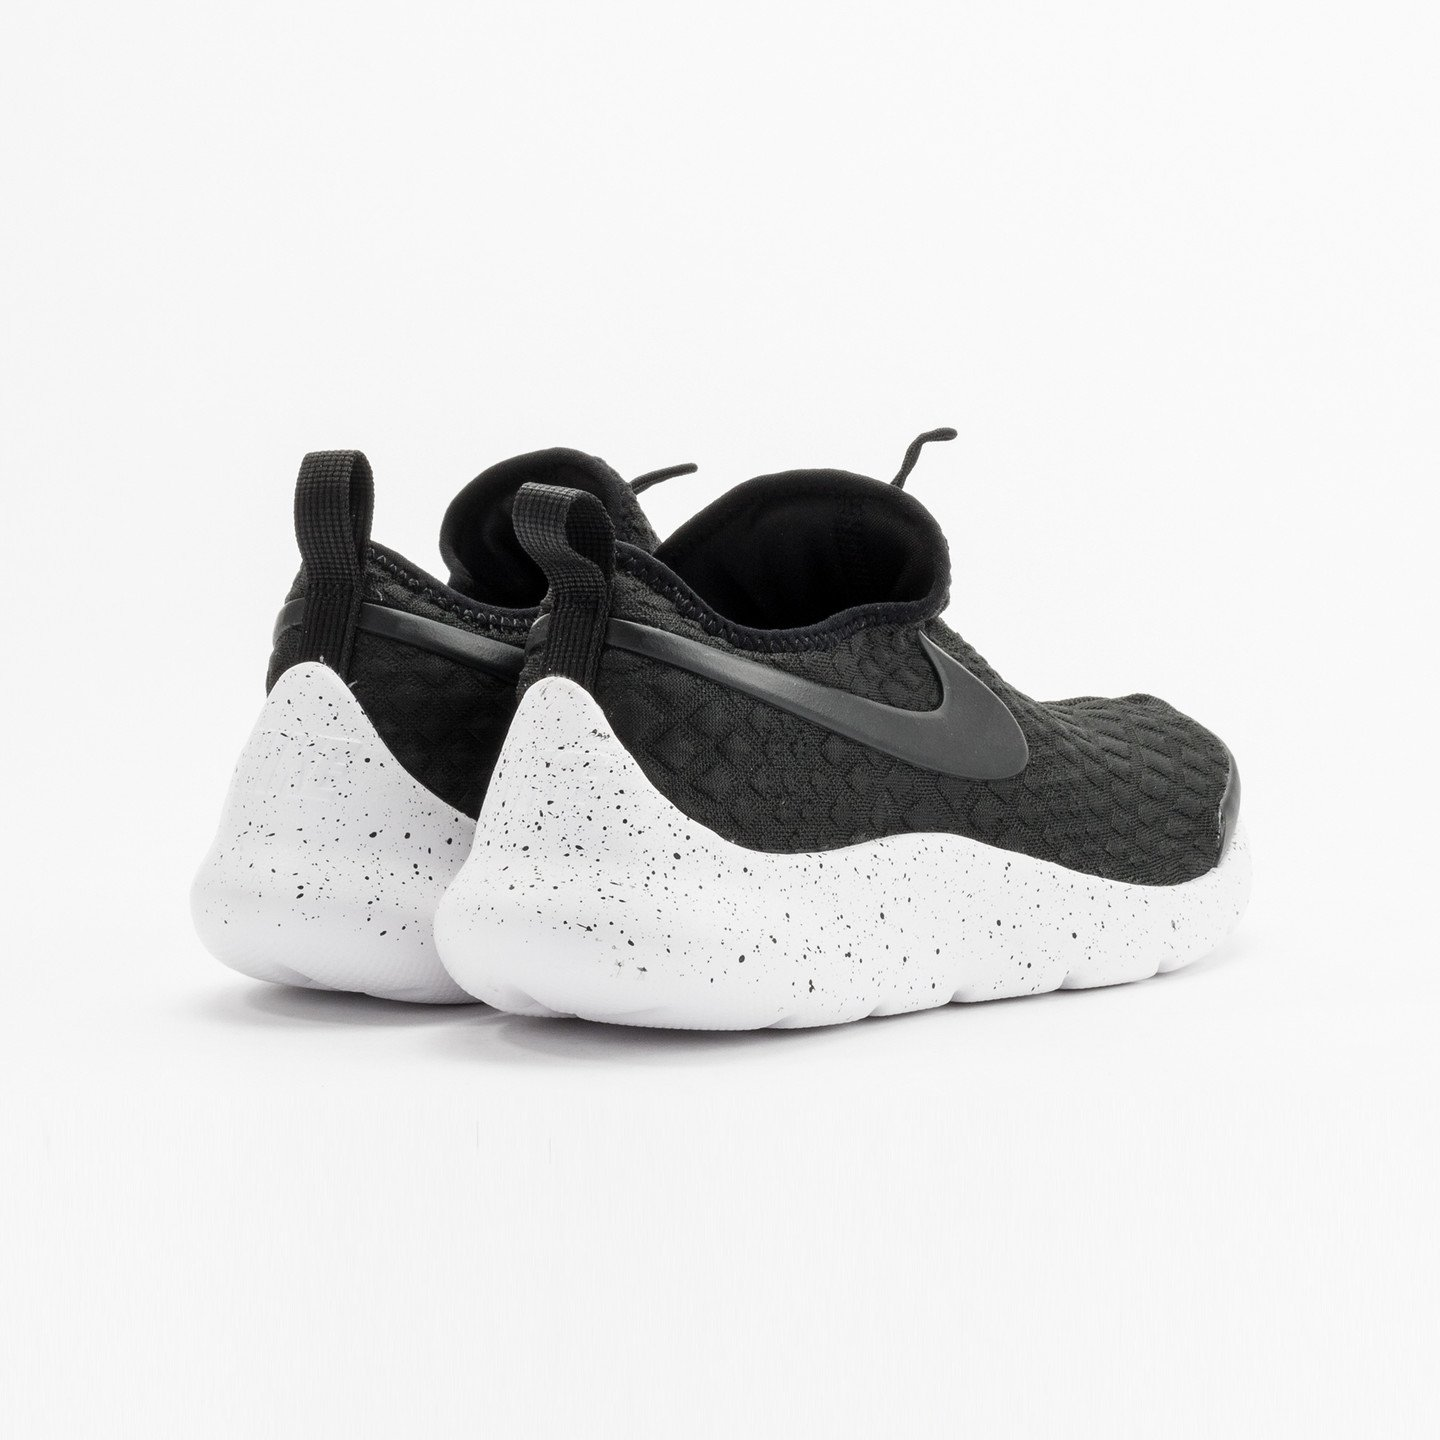 Nike Wmns Aptare Black / Cool Grey / White 881189-001